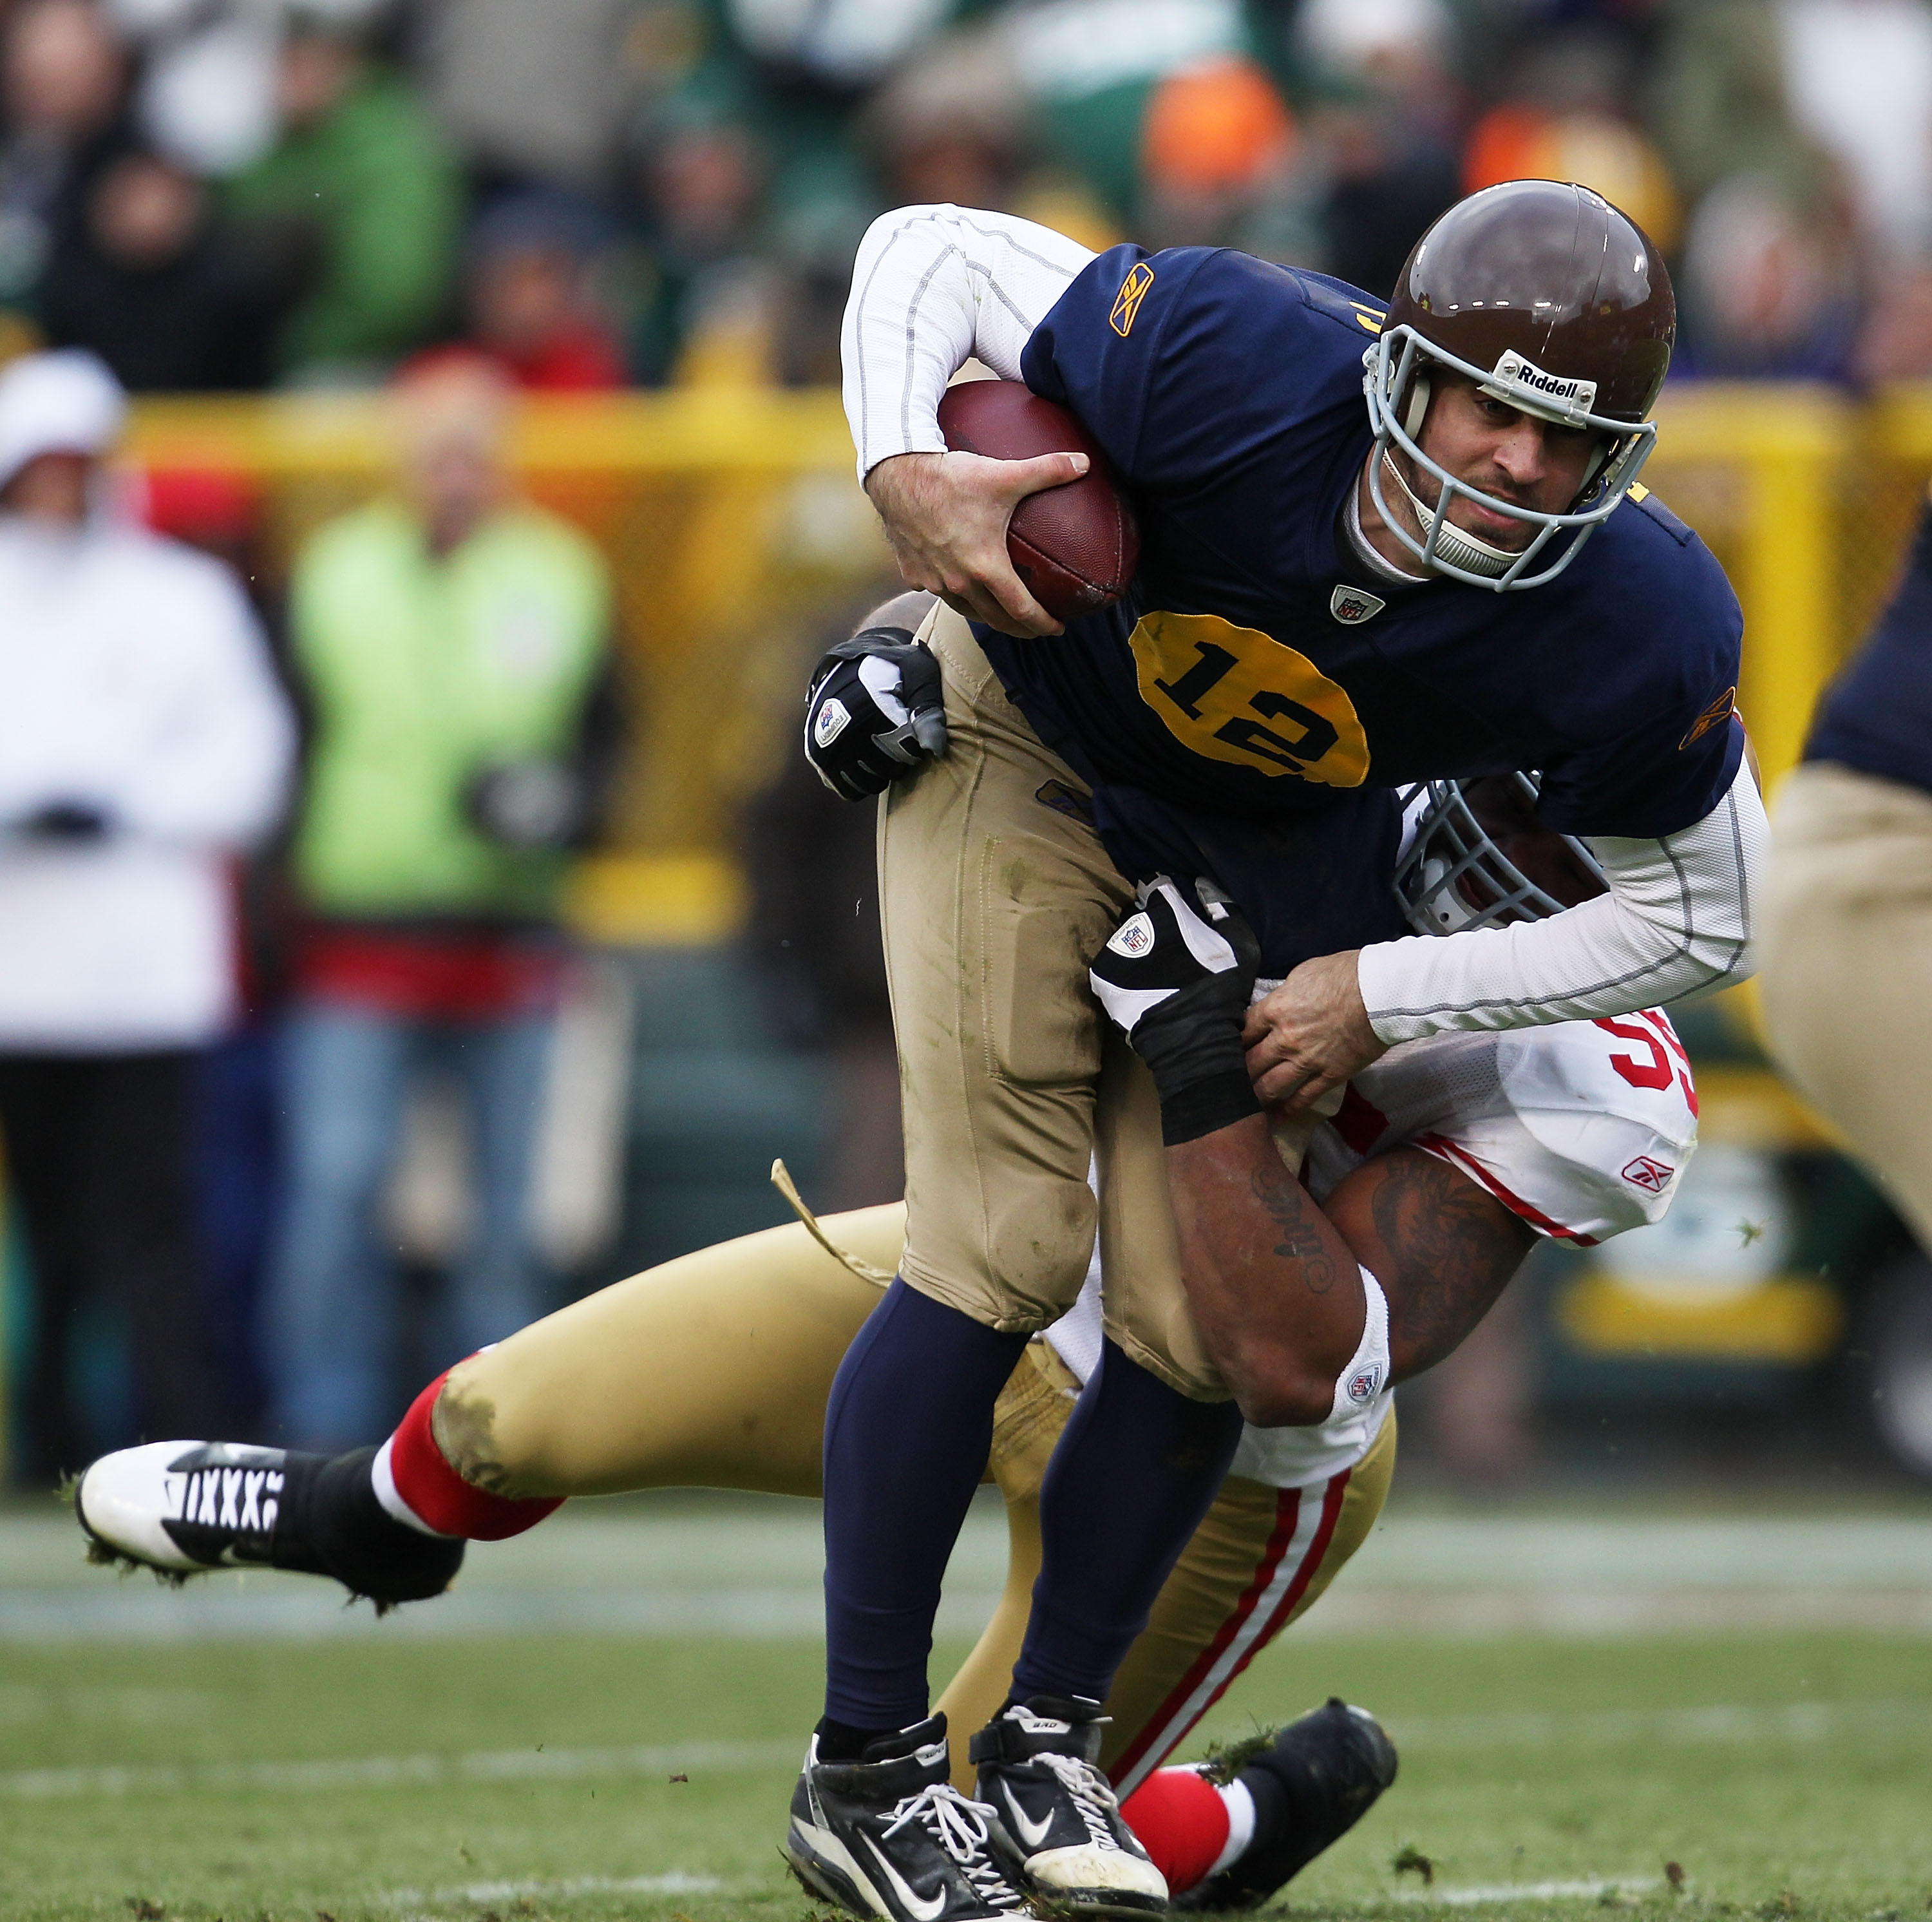 GREEN BAY, WI - DECEMBER 05: Aaron Rodgers #12 of the Green Bay Packers is sacked by Ahmad Brooks #55 of the San Francisco 49ers at Lambeau Field on December 5, 2010 in Green Bay, Wisconsin. The Packers defeated the 49ers 34-16. (Photo by Jonathan Daniel/